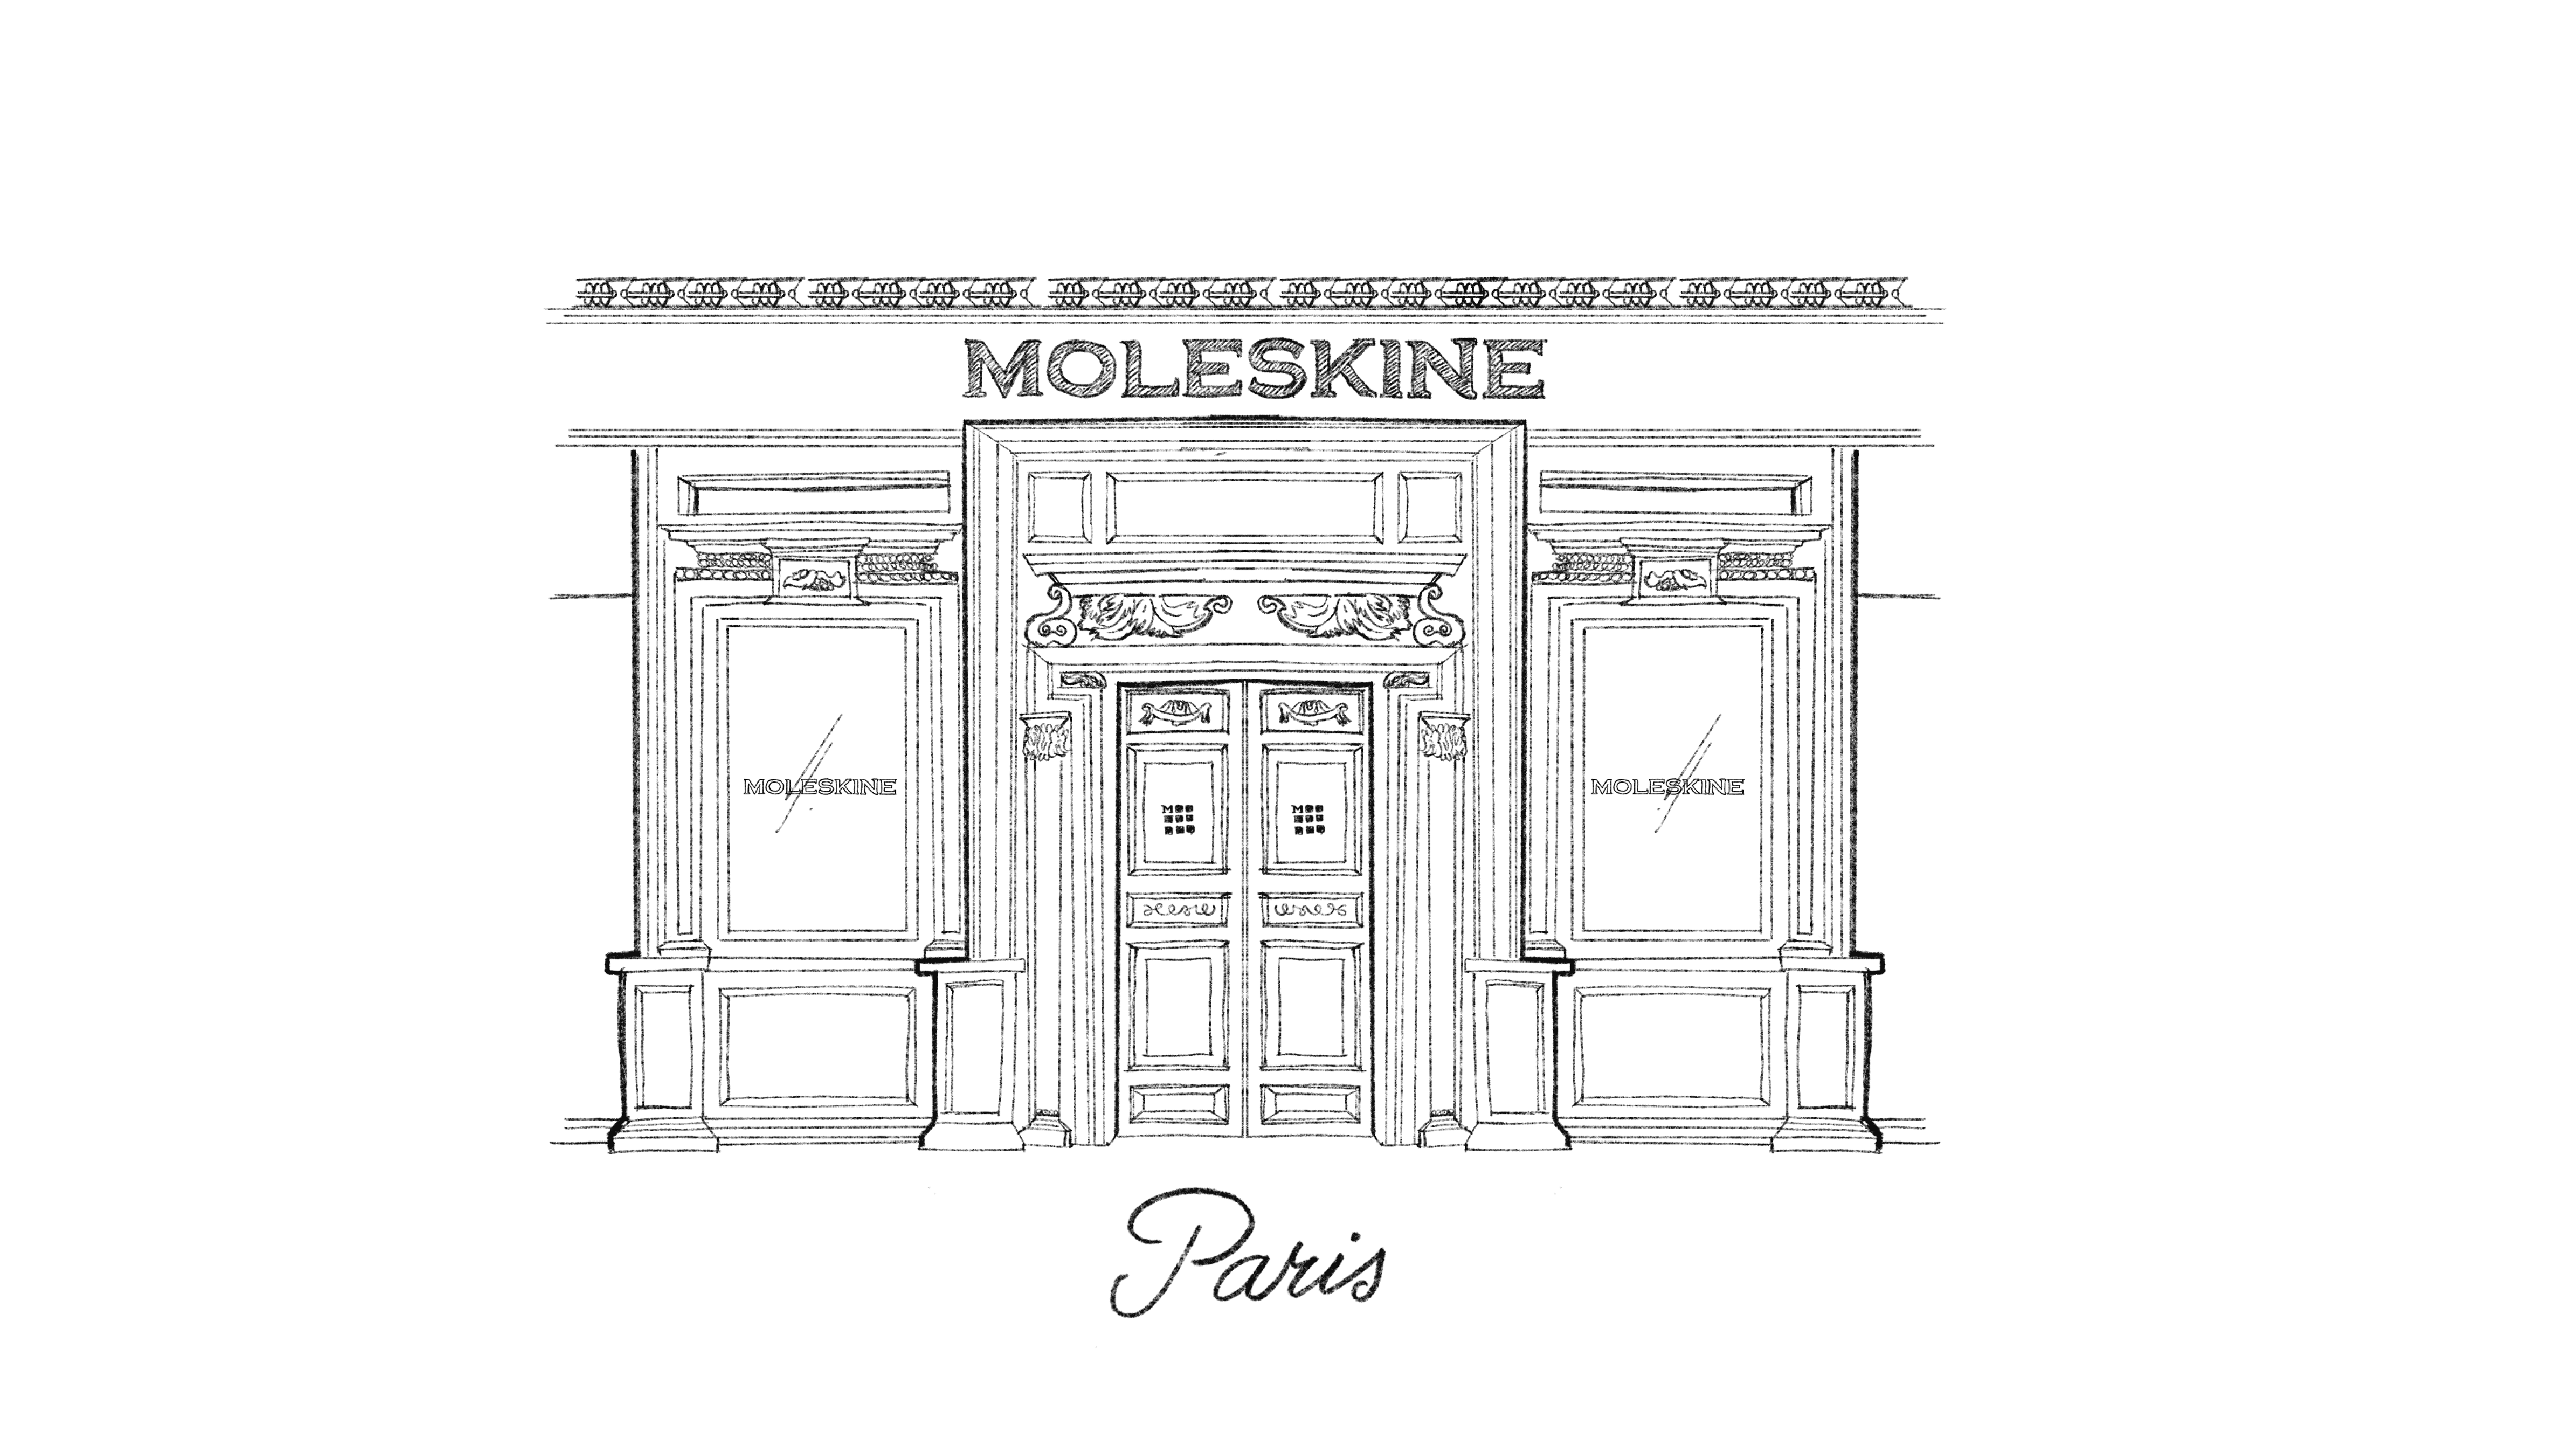 MOLESKINE-store-sign-sketch-01